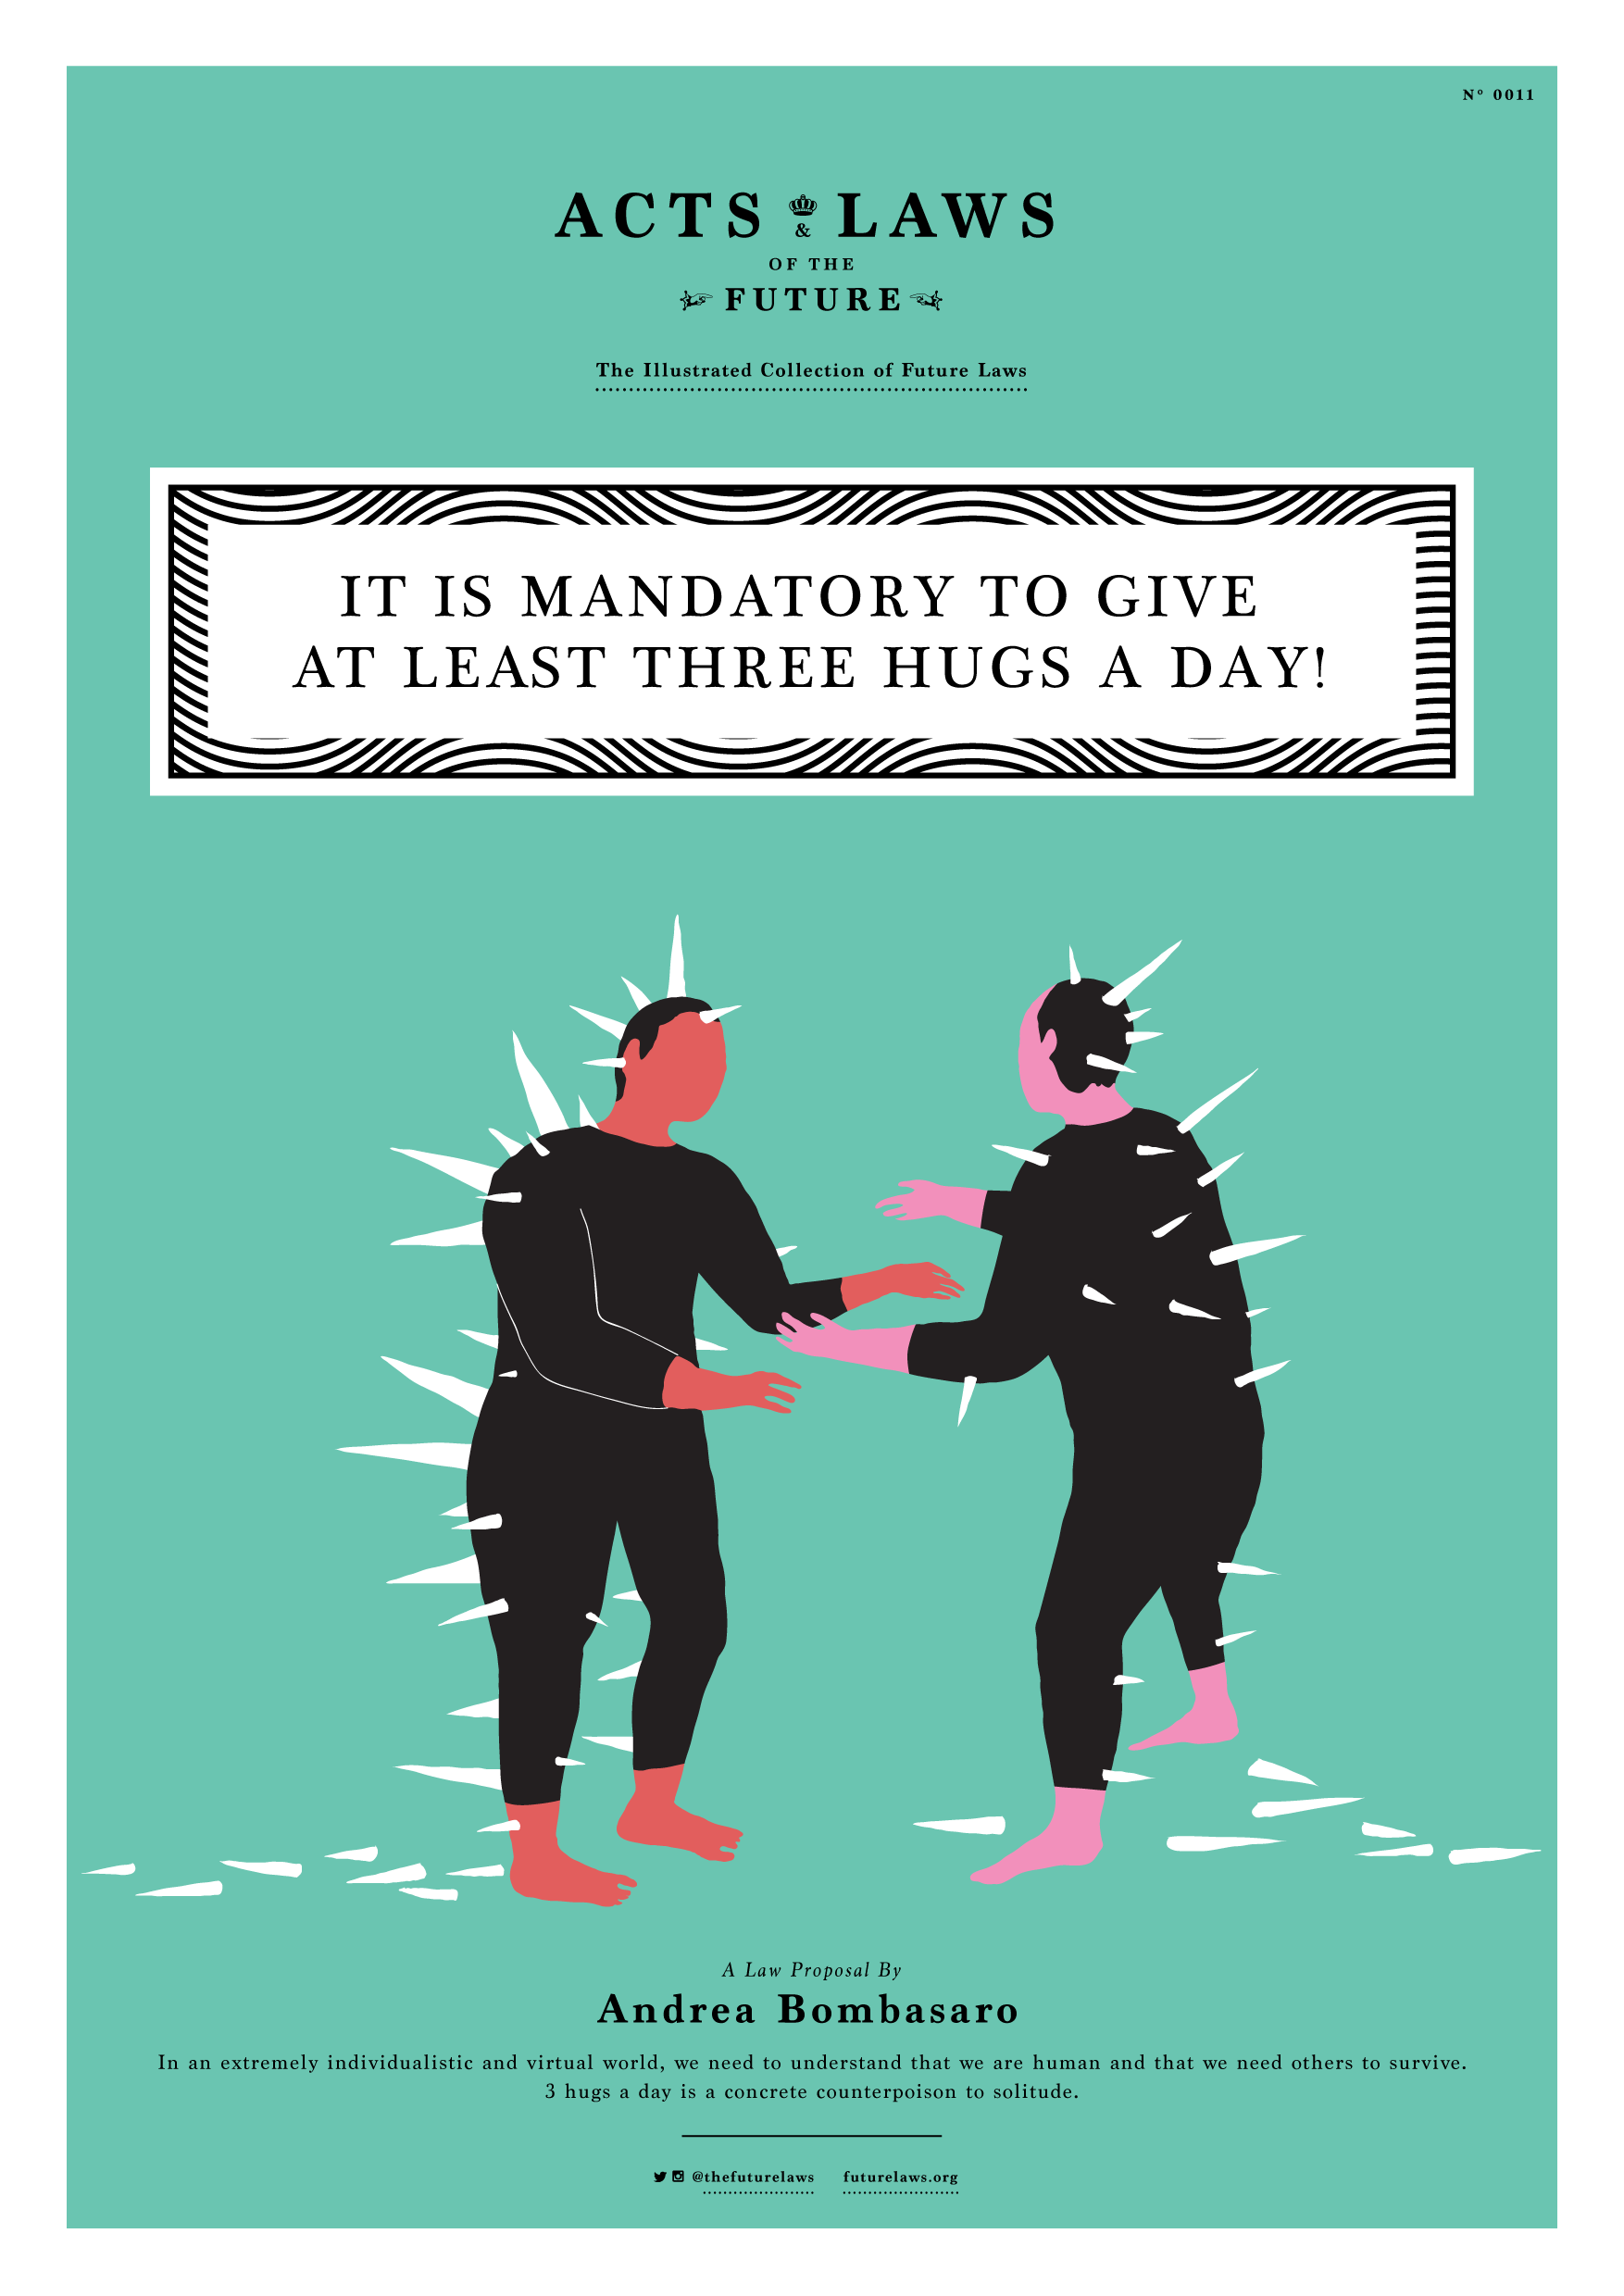 It is mandatory to give at least three hugs a day!